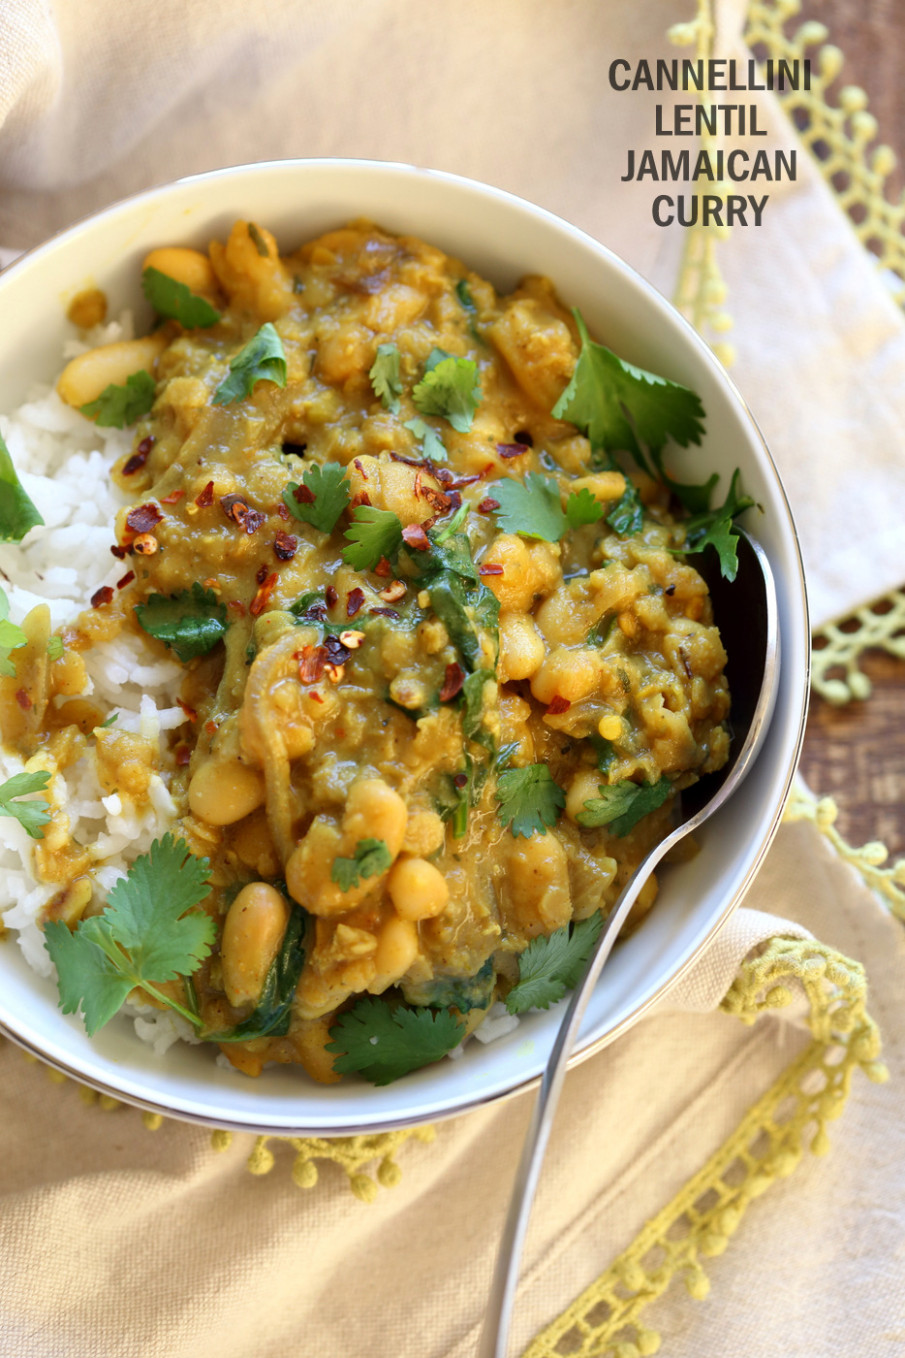 Cannellini and Lentil Jamaican Curry - jamaican vegetarian recipes